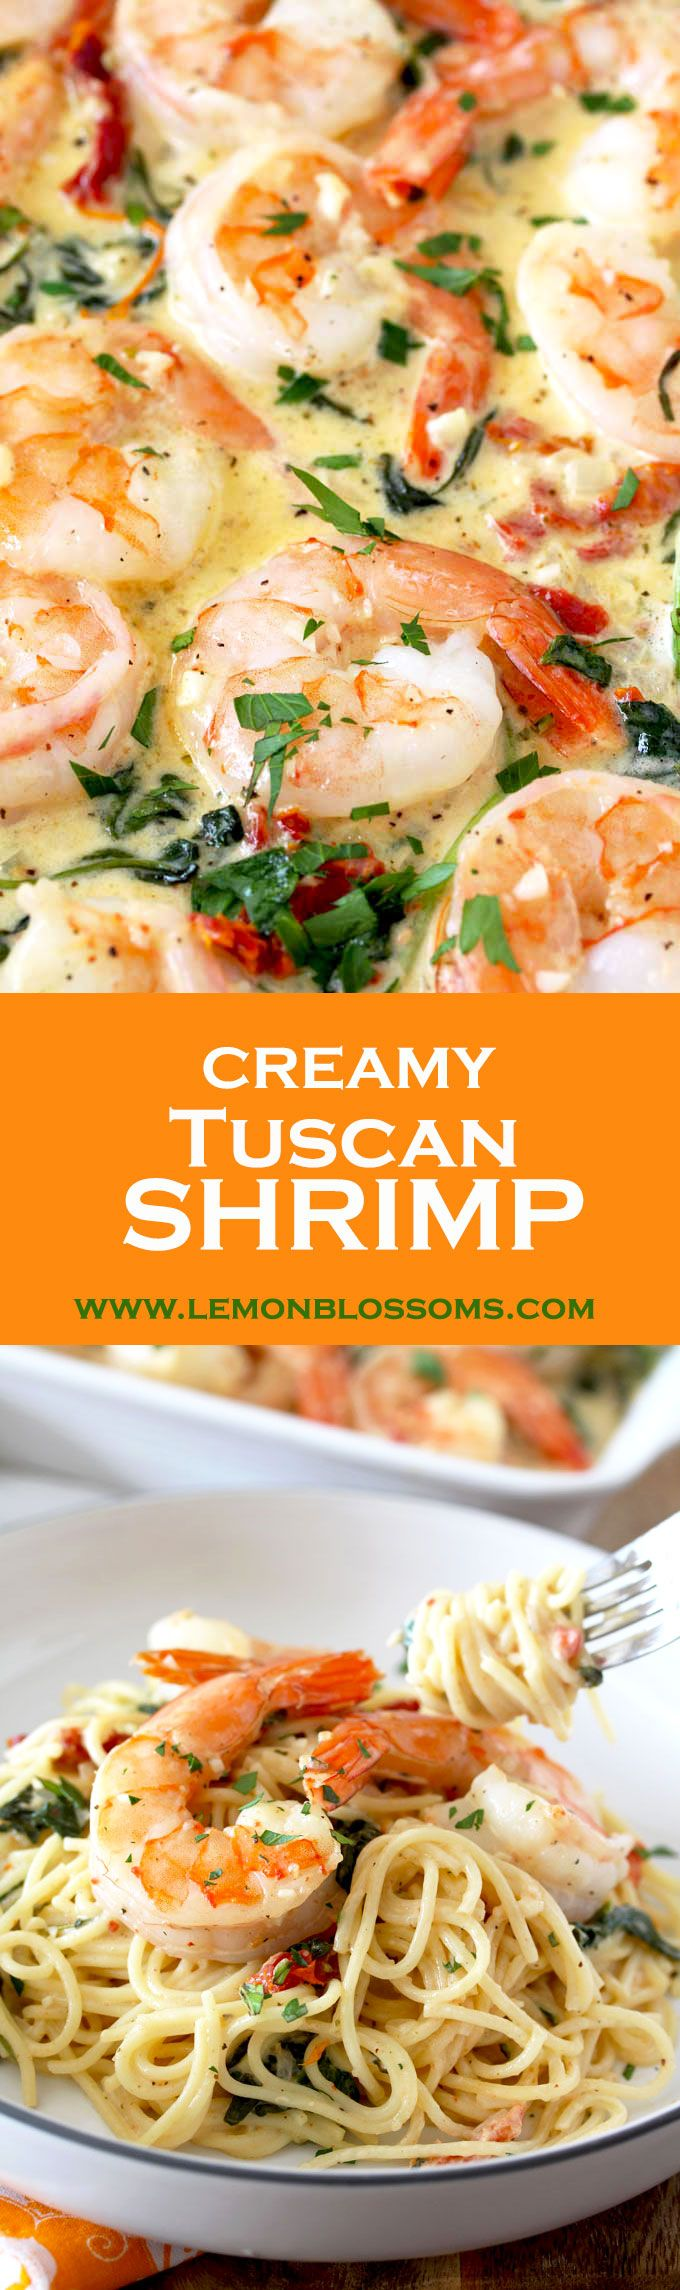 This Creamy Tuscan Shrimp is with flavor! Succulent shrimp in creamy and rich garlic Parmesan sauce with sun dried tomatoes and spinach. The perfect dish to impress your guests.  via @lmnblossoms